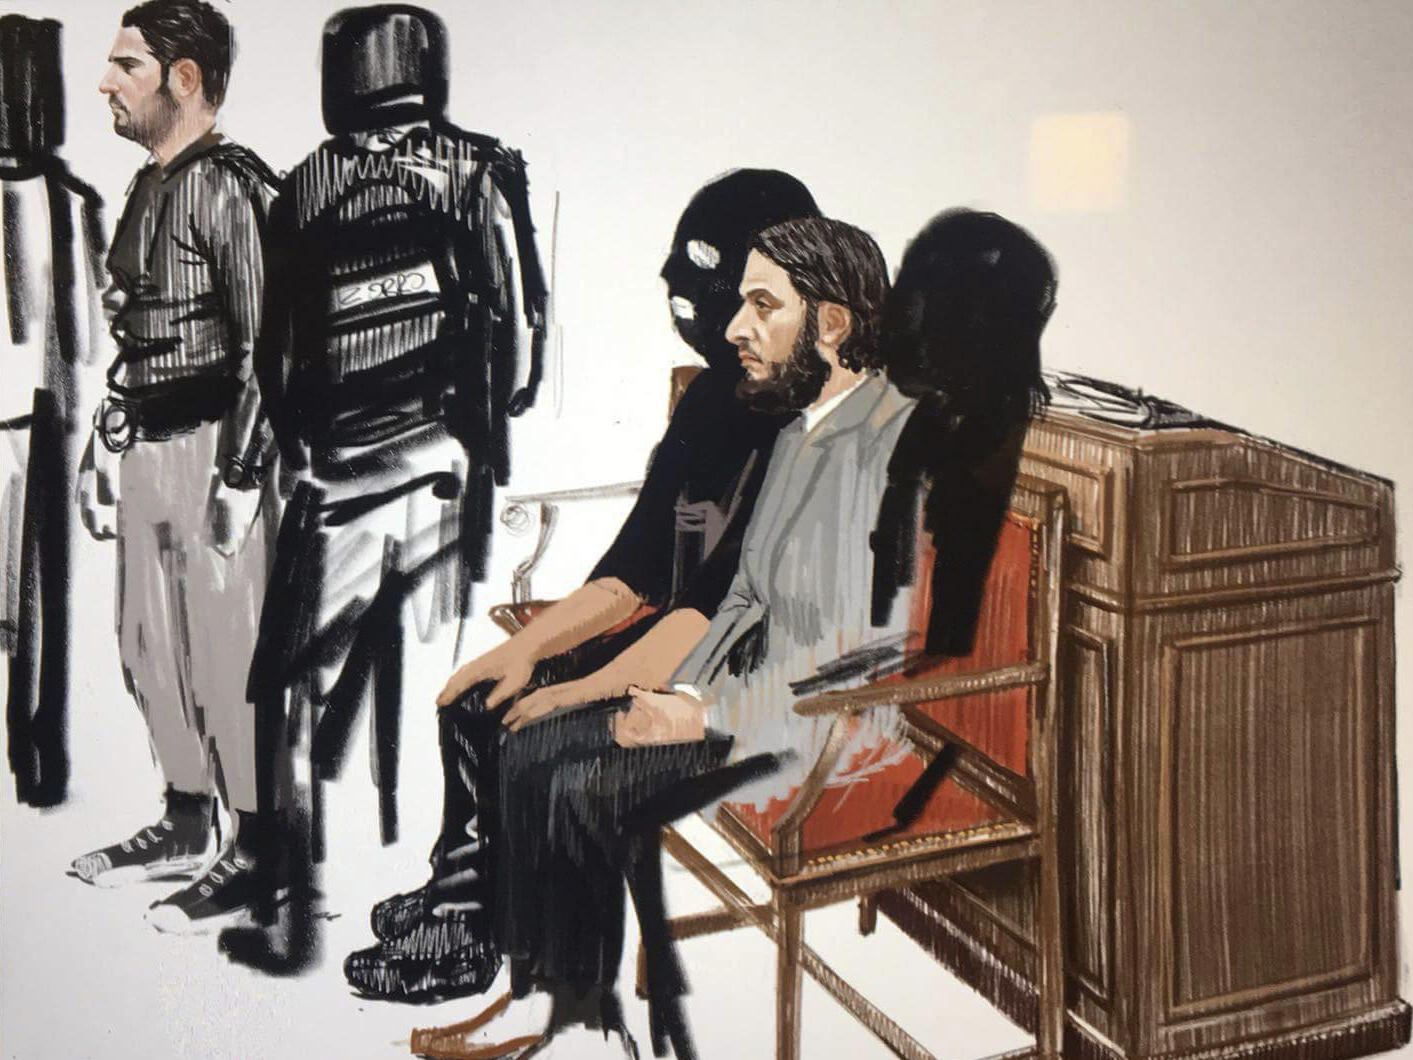 Salah Abdeslam trial: Paris attacks suspect lambasts 'anti-Muslim bias'